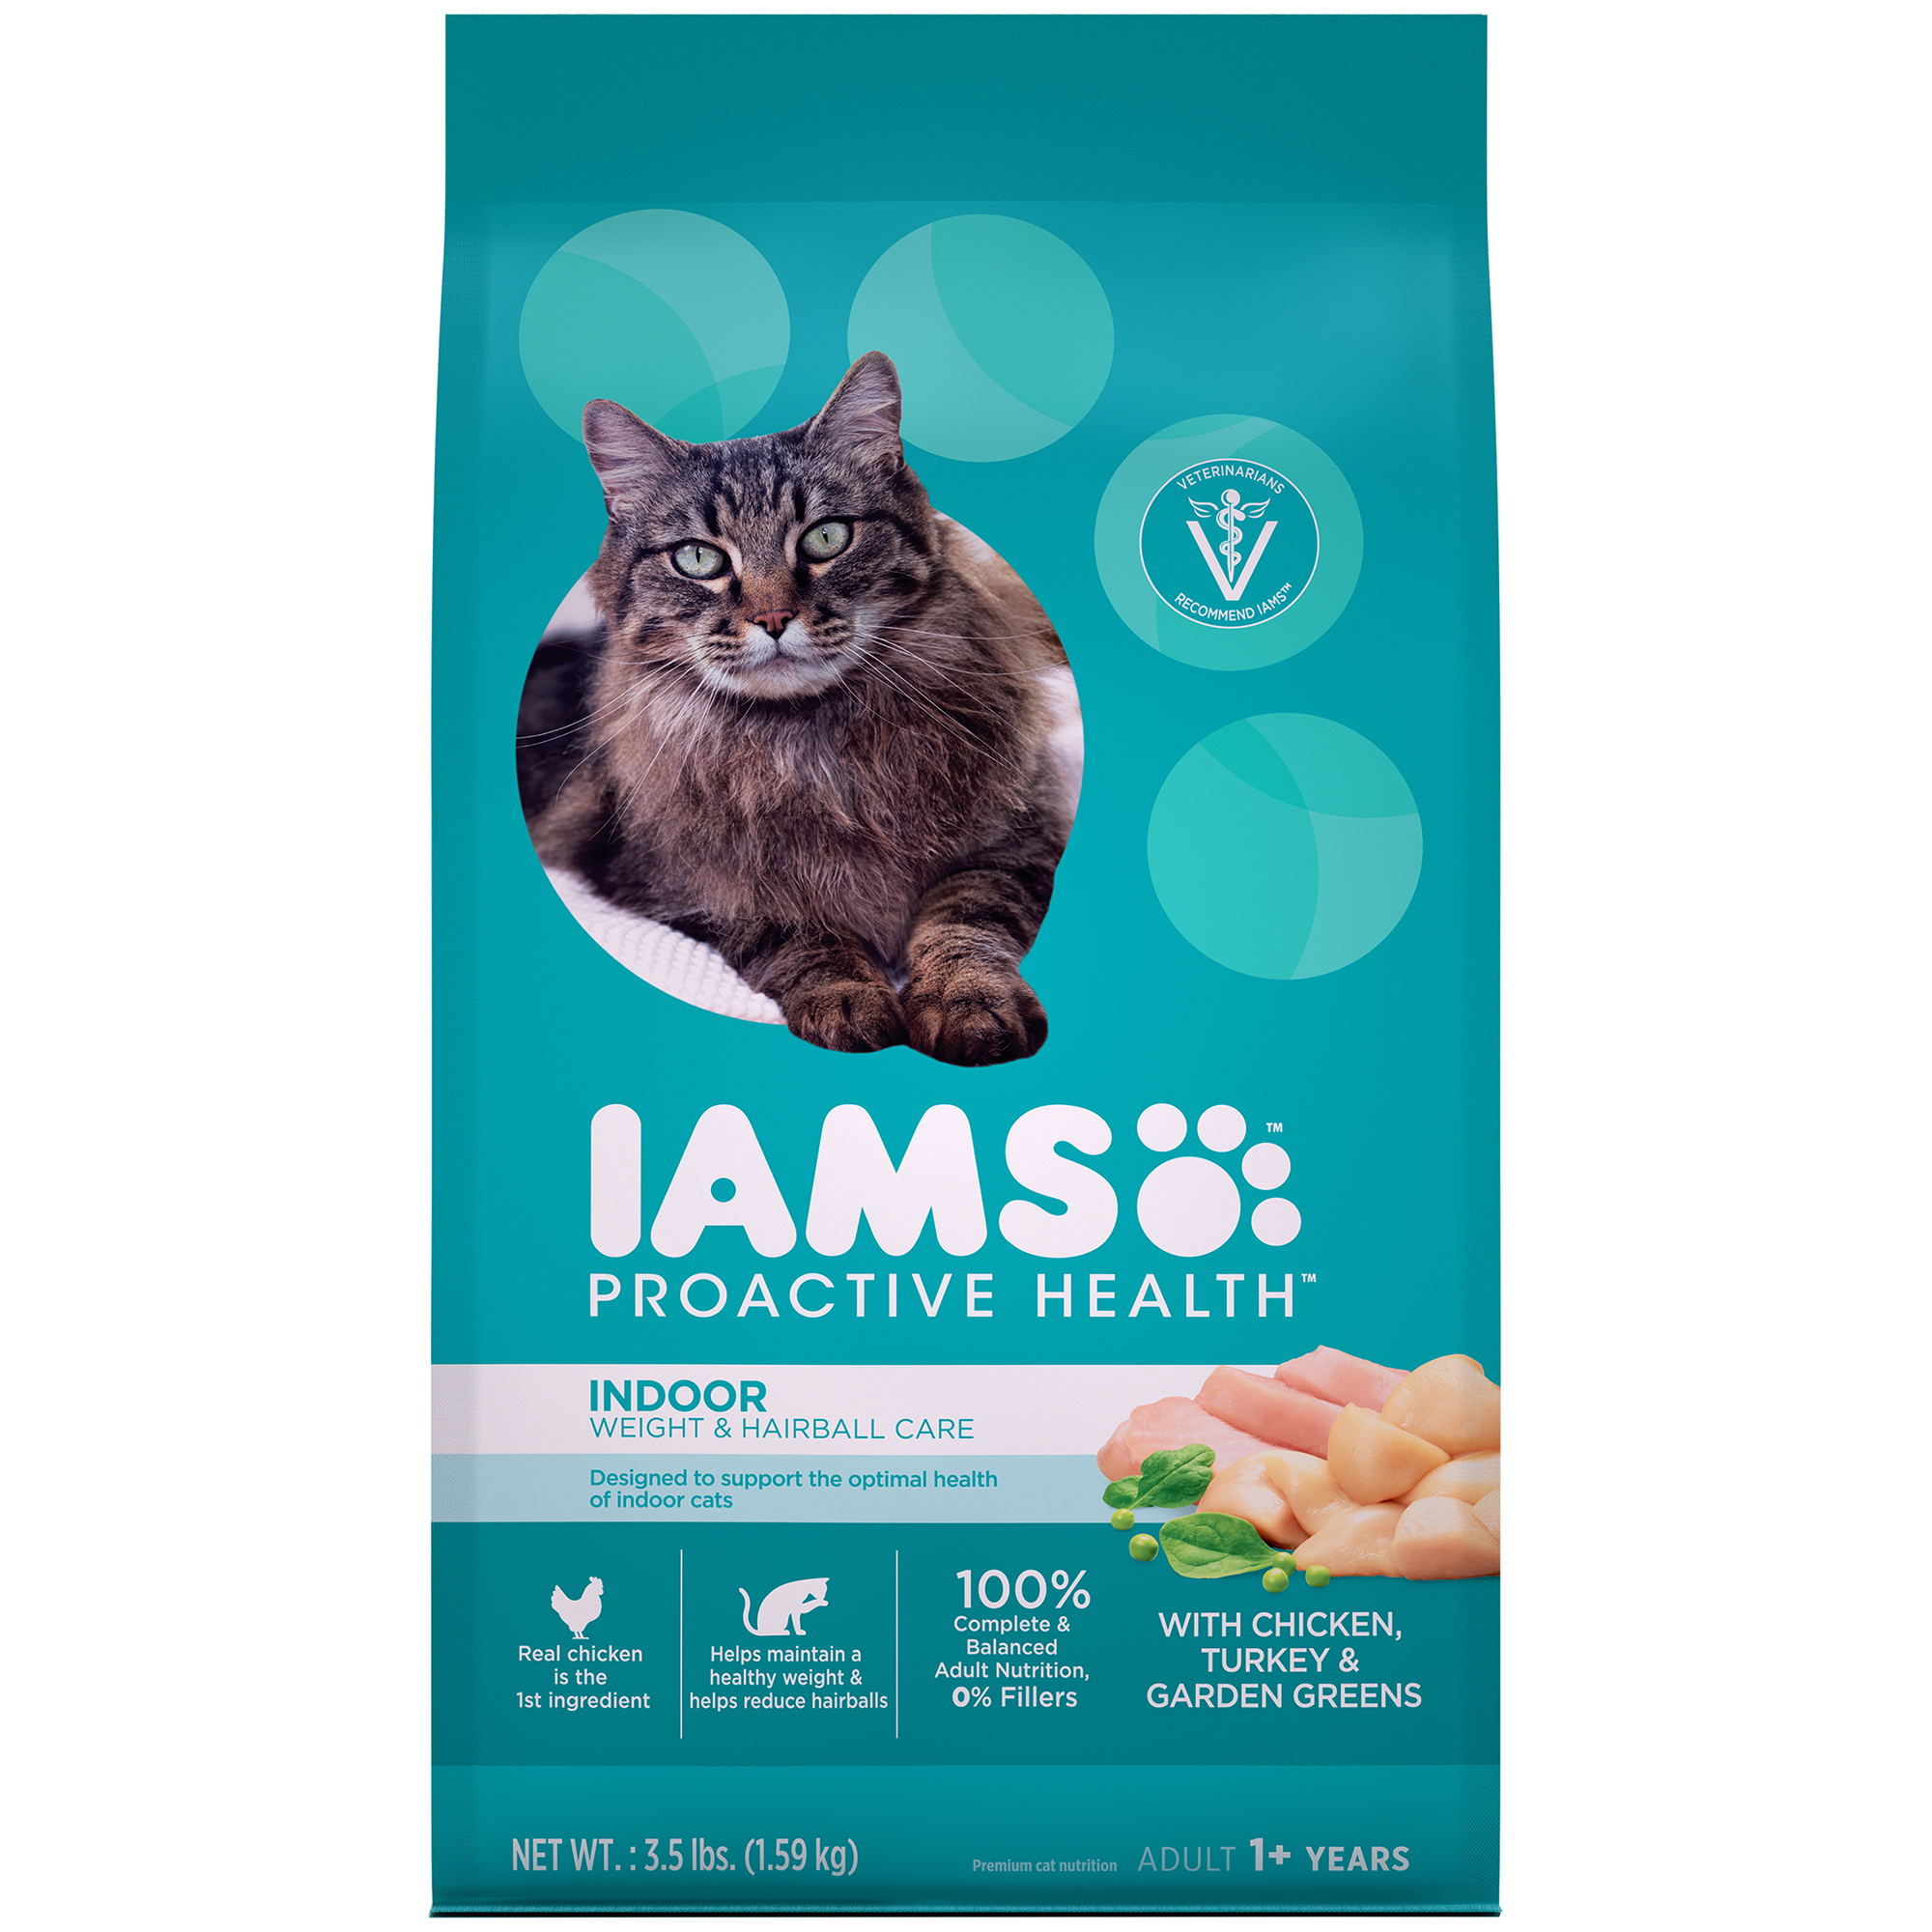 IAMS PROACTIVE HEALTH Adult Indoor Weight & Hairball Care Dry Cat Food with Chicken, Turkey, and Garden Greens, 3.5 lb. Bag